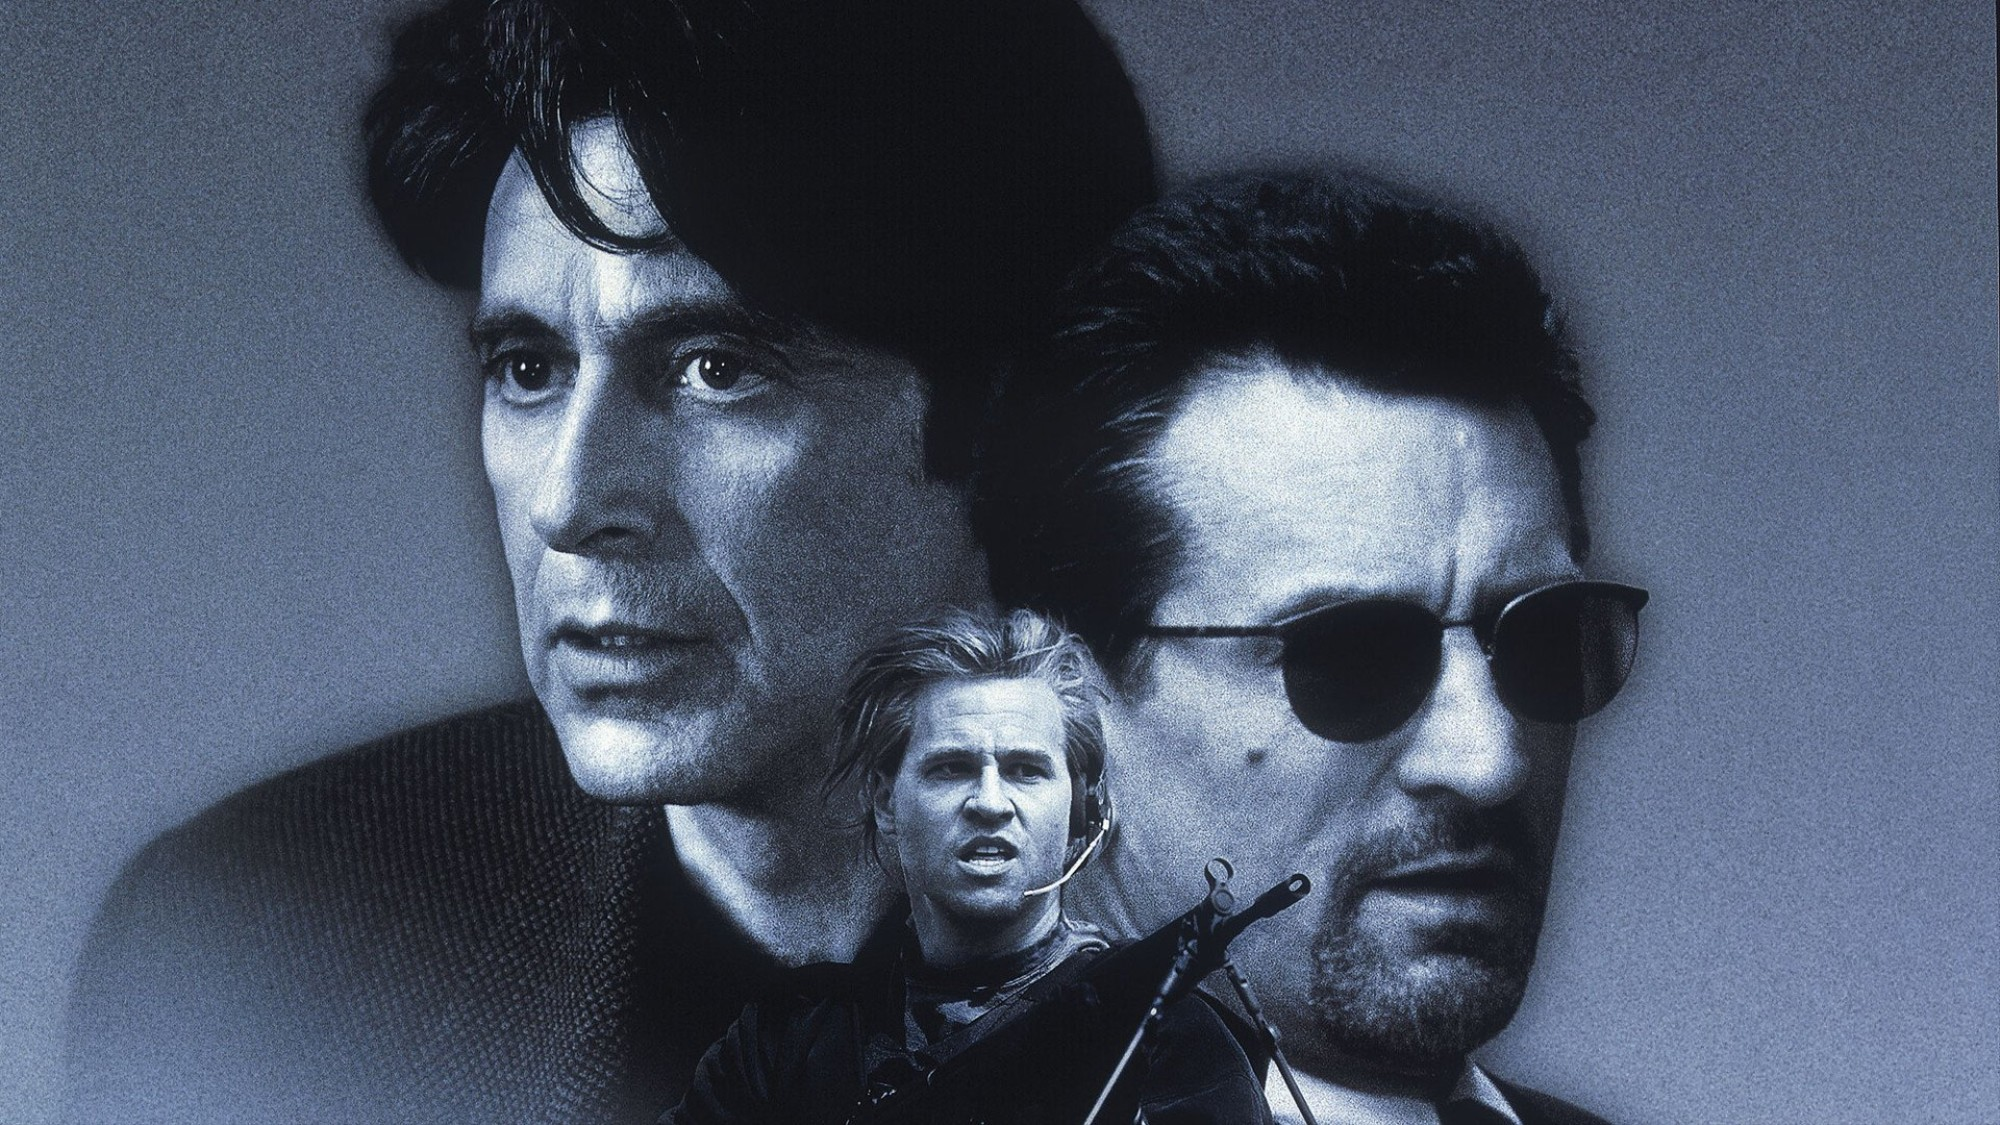 Heat' Is Hands Down the Best Movie on Netflix Right Now - VICE